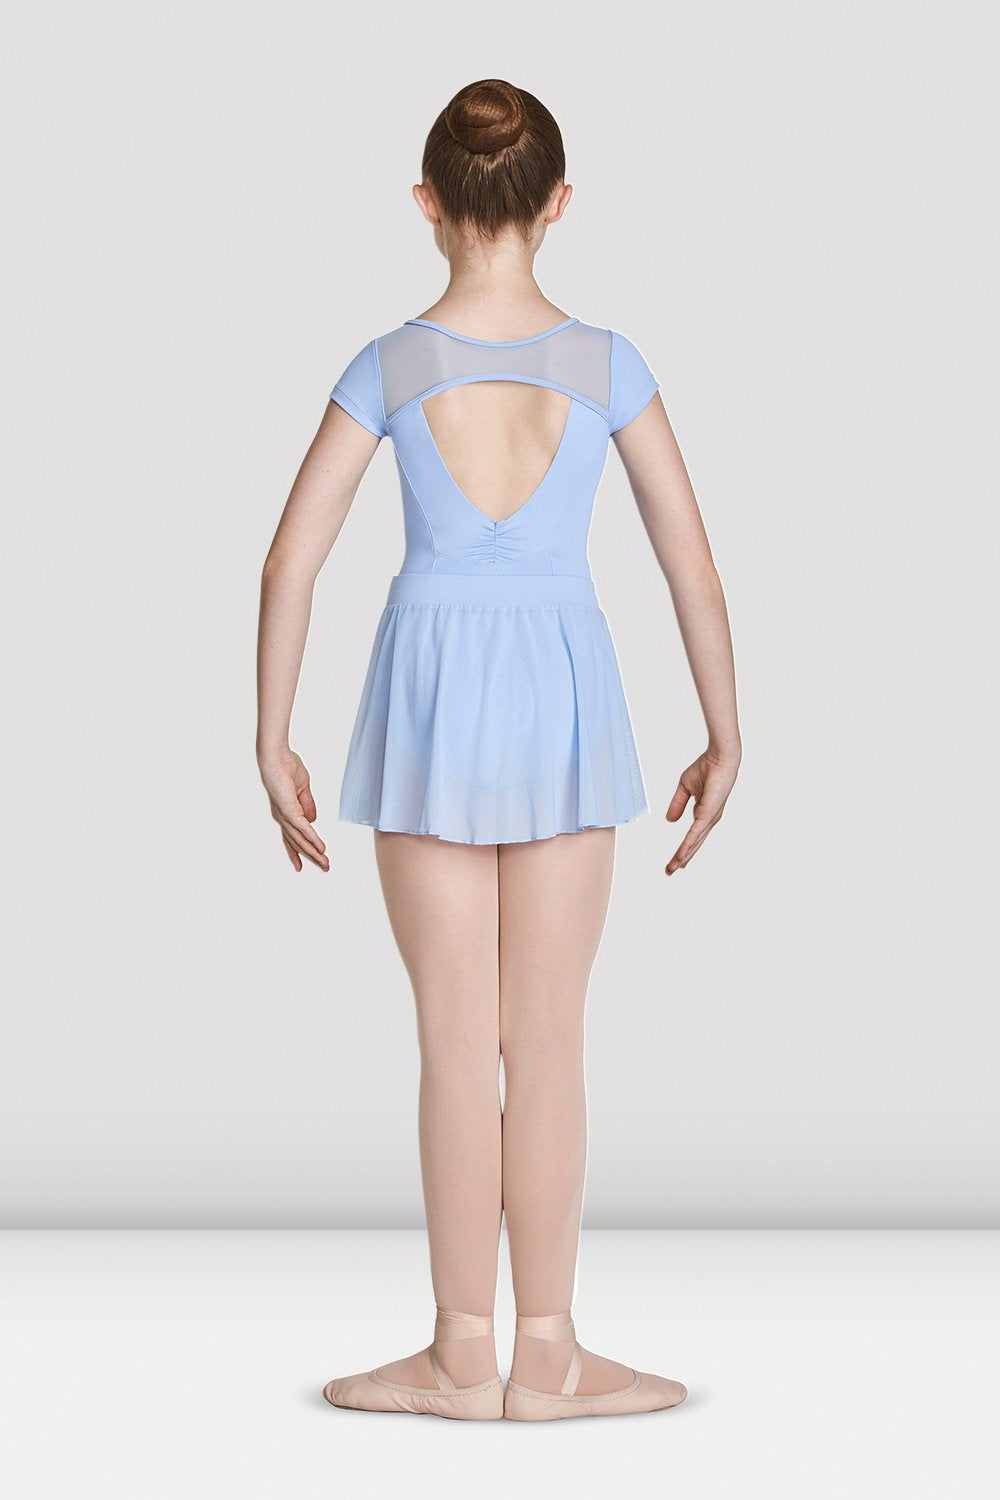 Blue Bloch Girls High Neckline Open Back Cap Sleeve Leotard on female model feet in first position with arms in bra bas facing back